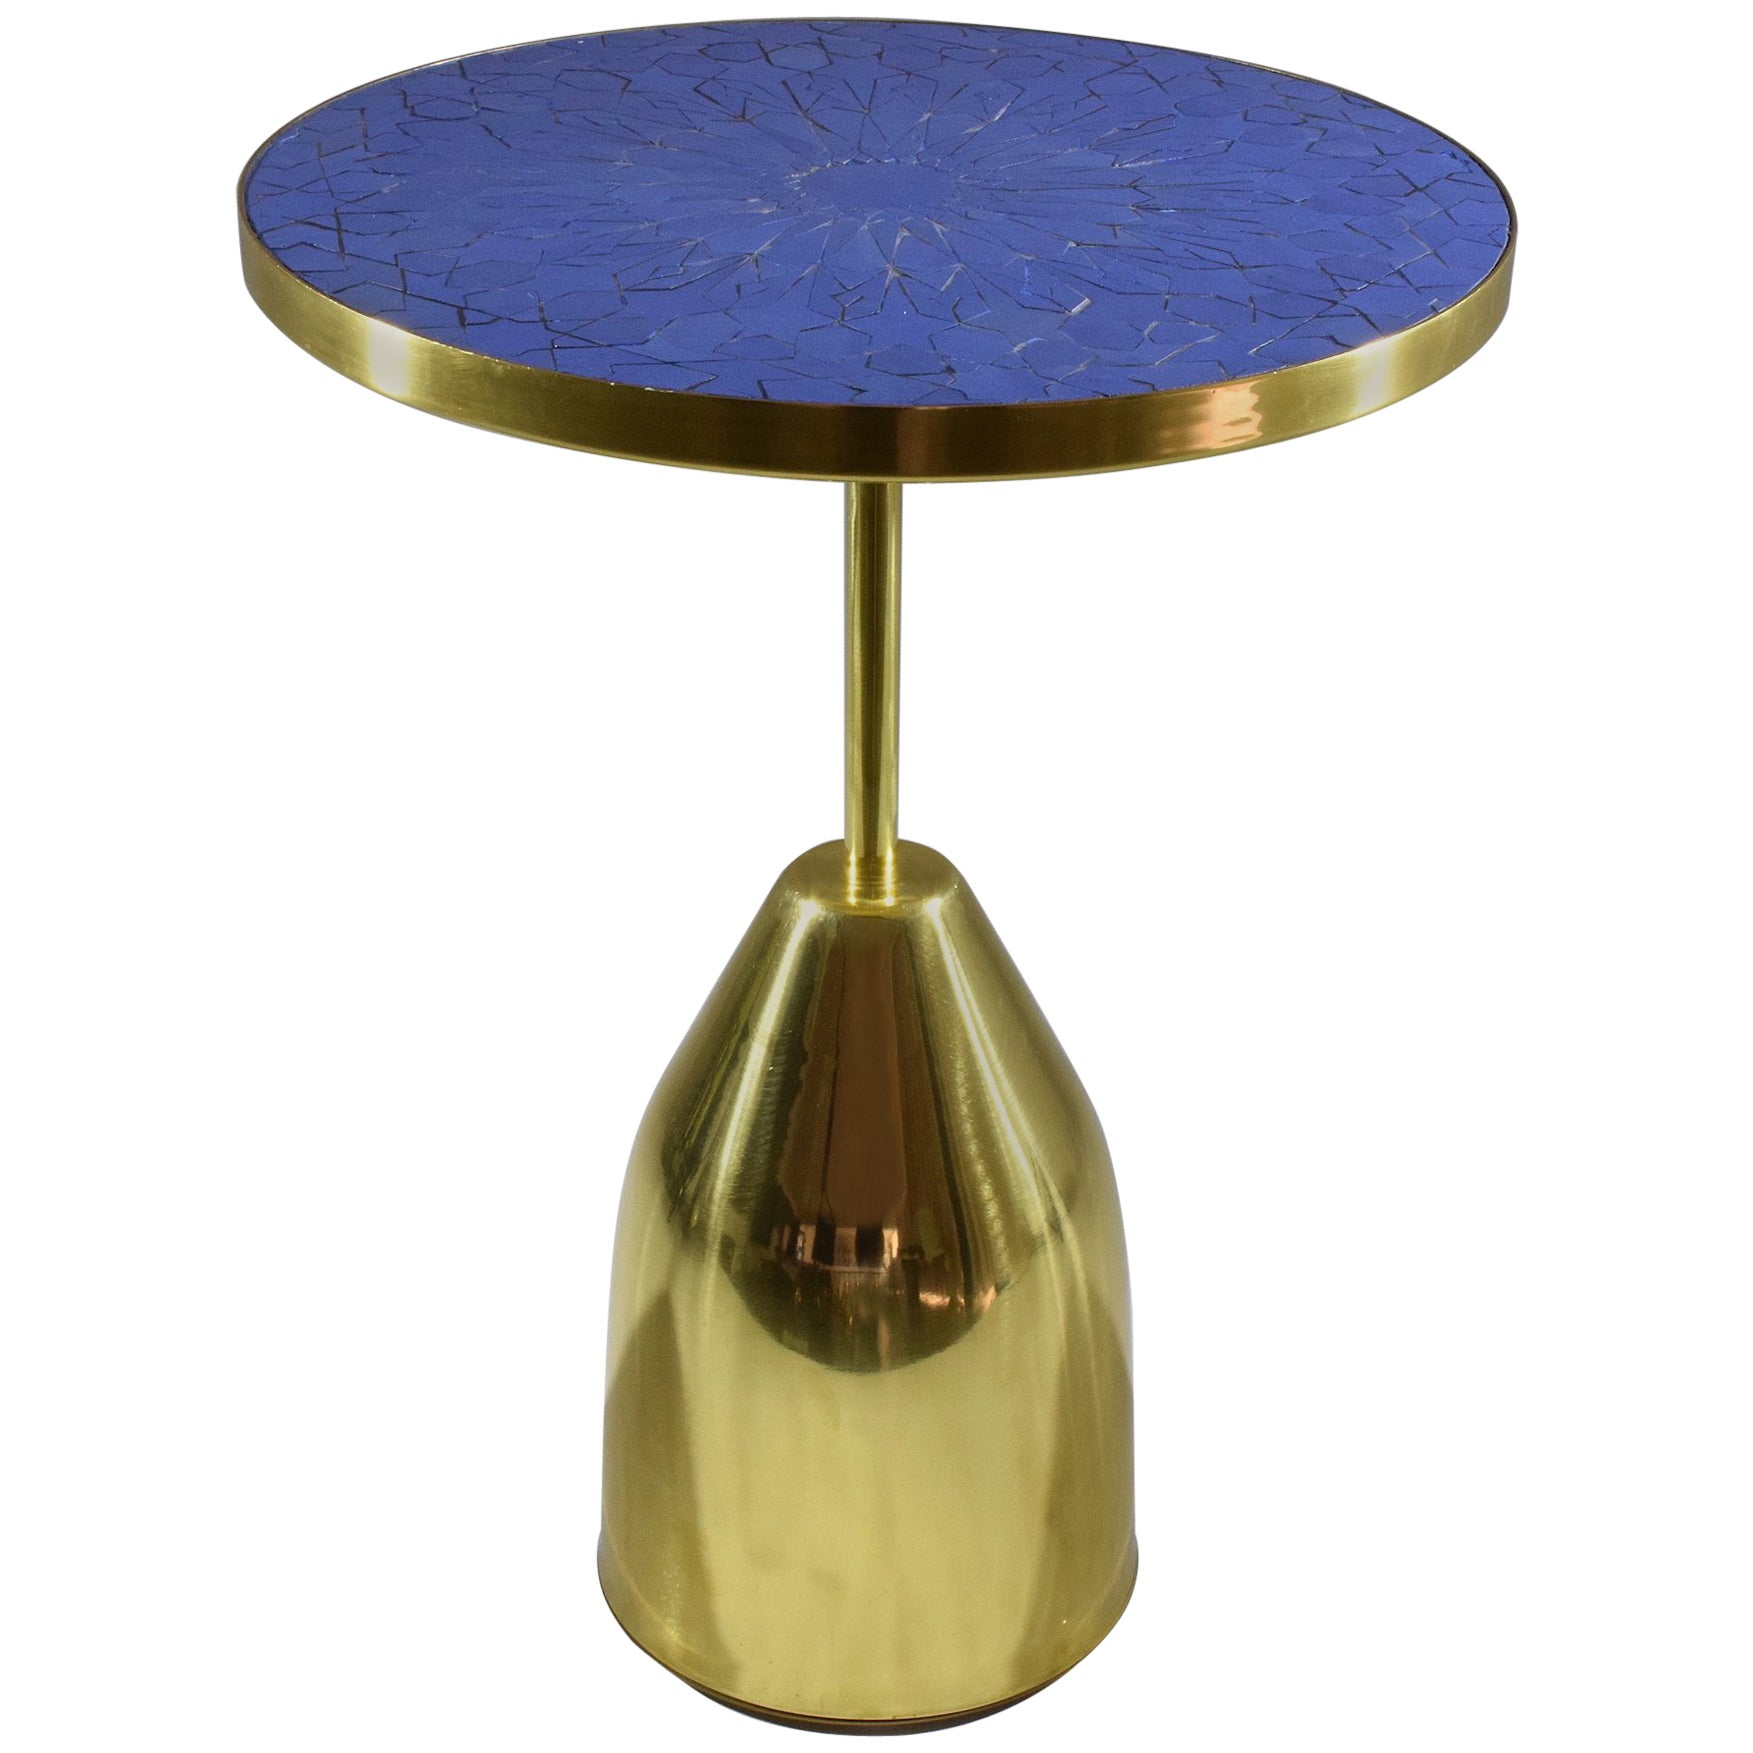 Z-I-III Contemporary Brass Mosaic Side Table, Flow Collection